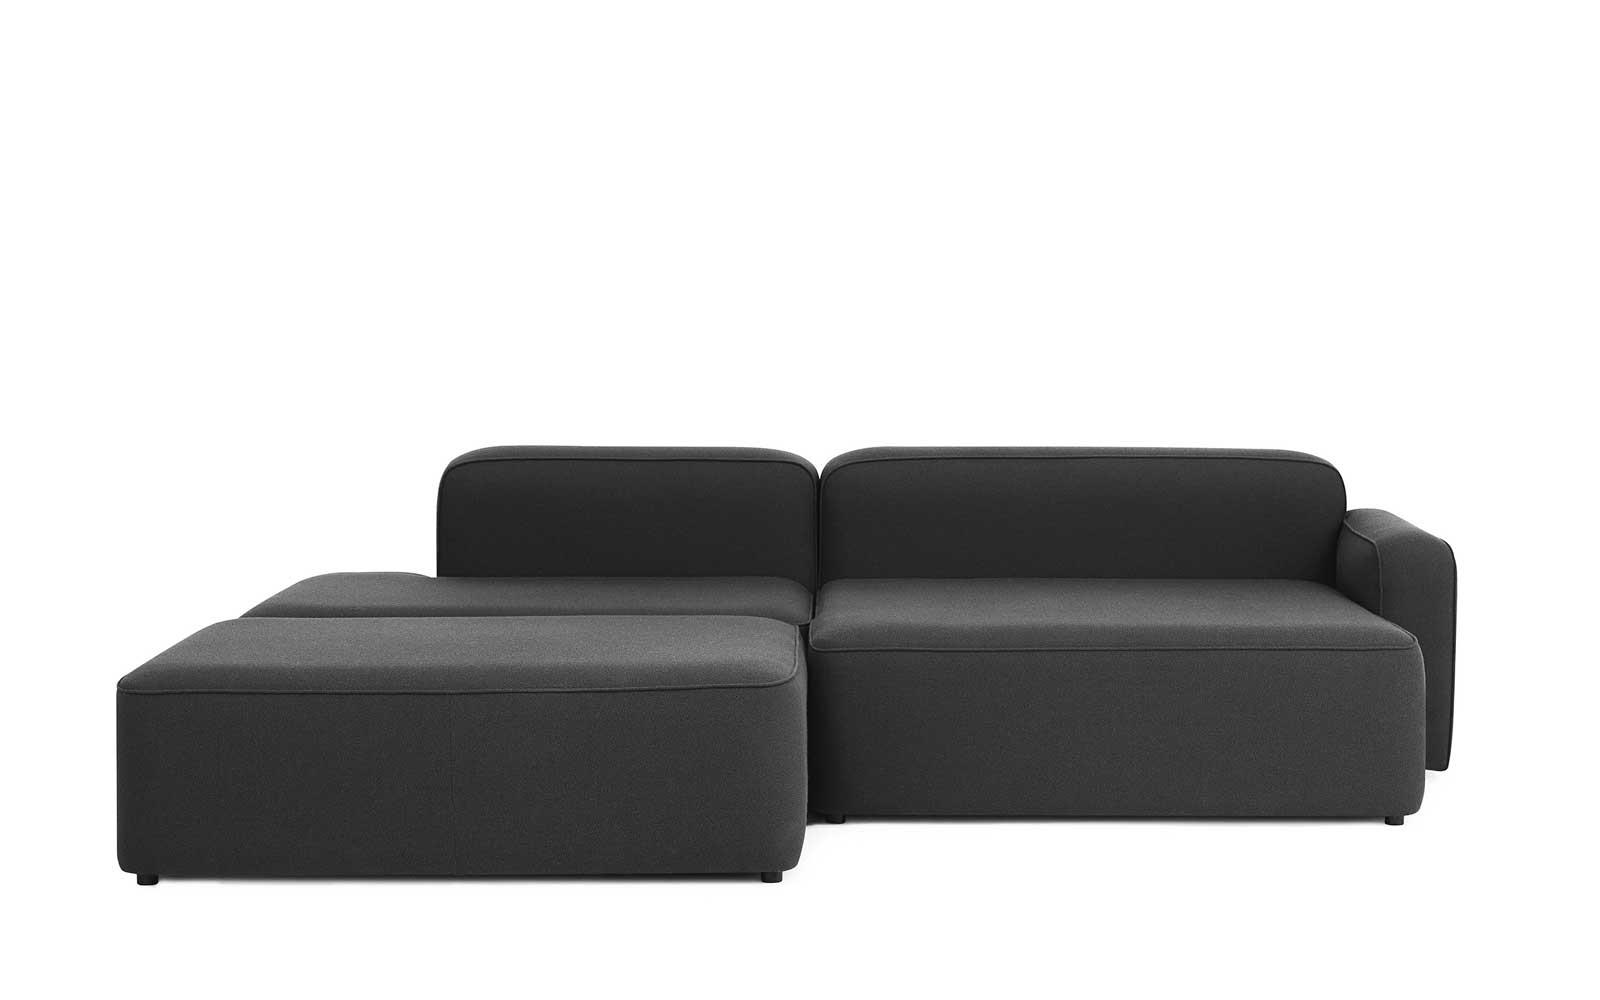 Rope Sofa With Chaise Pouf Lounge Right Fame 5jALc34Rq